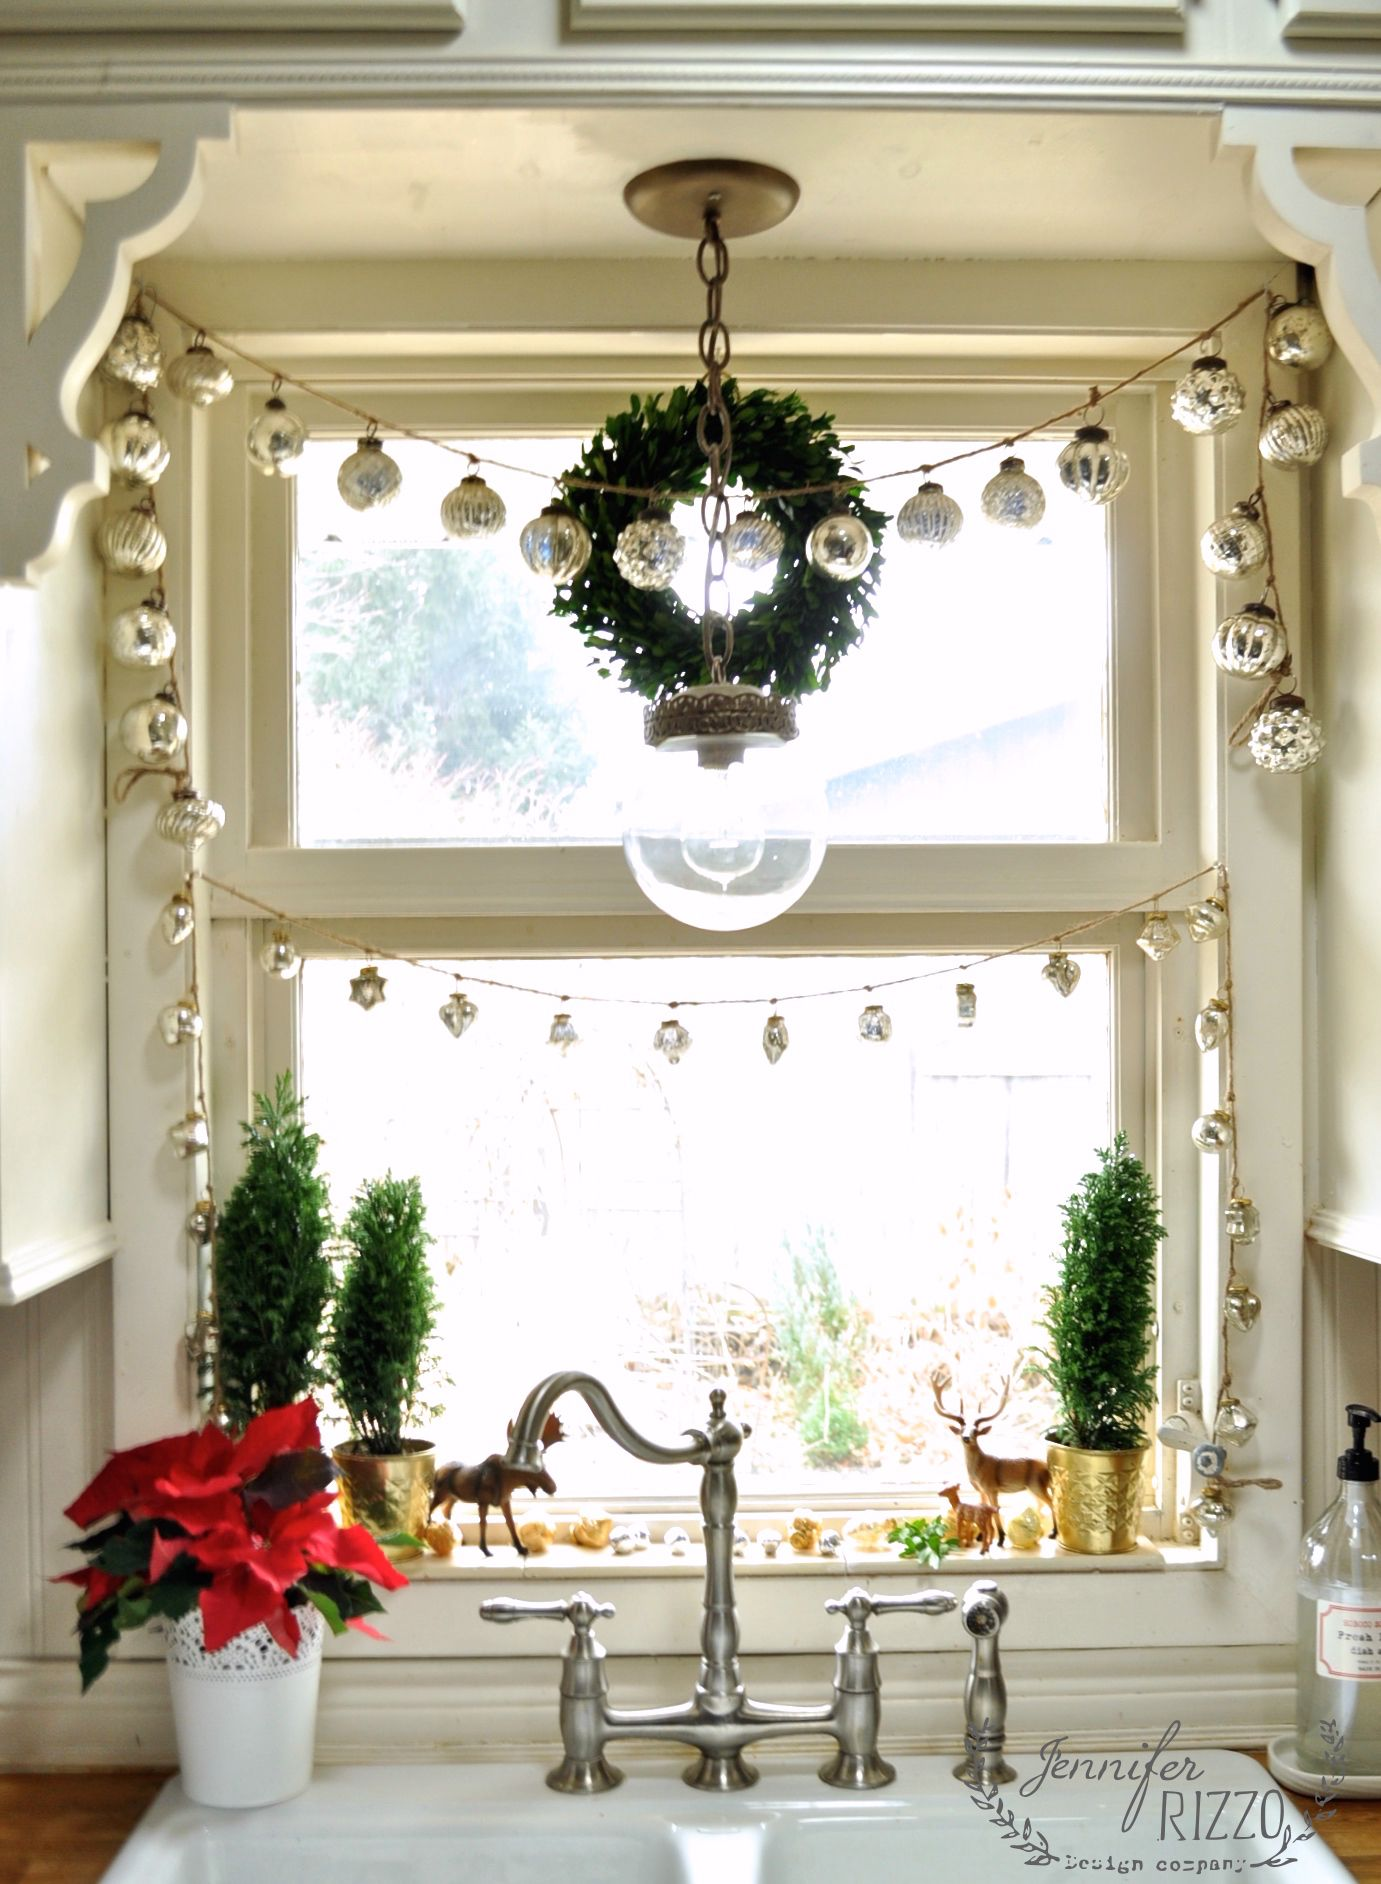 Holiday kitchen decor ideas Window framed in